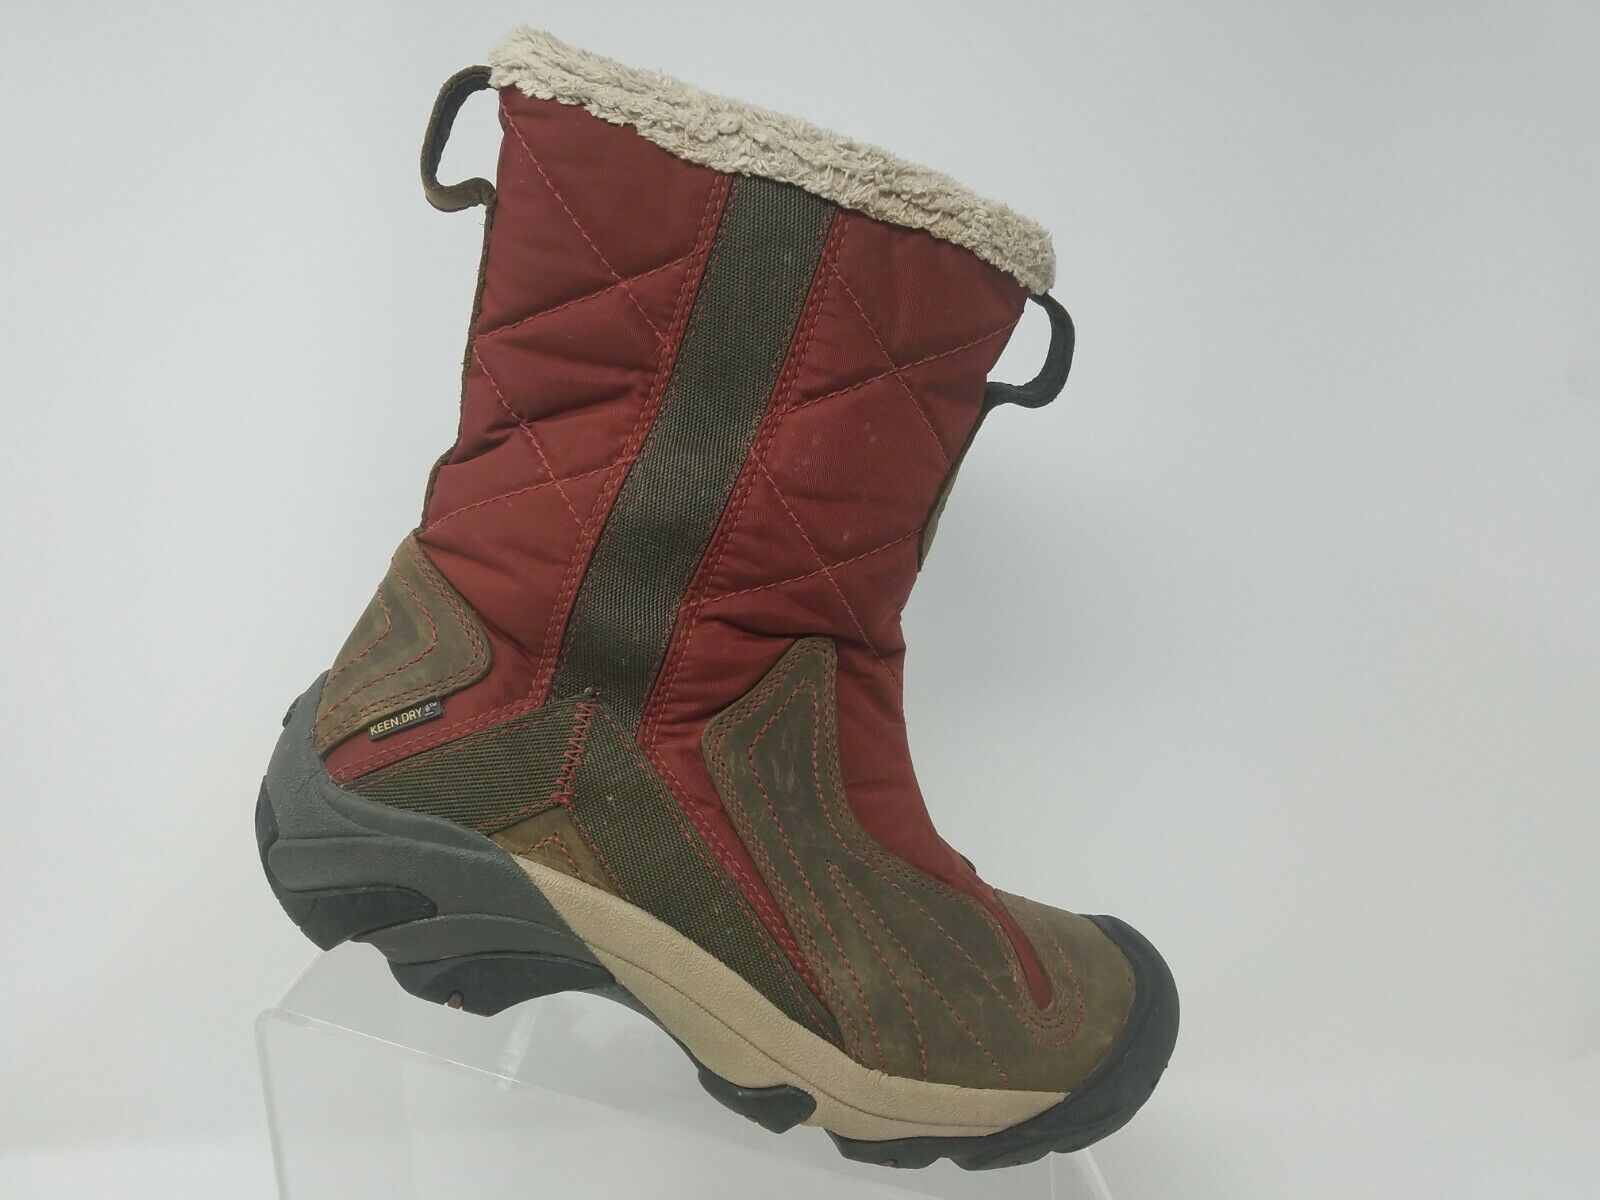 Keen Womens Water Proof Snow Boot Size 7.5 Red Keen Dry Zip Up